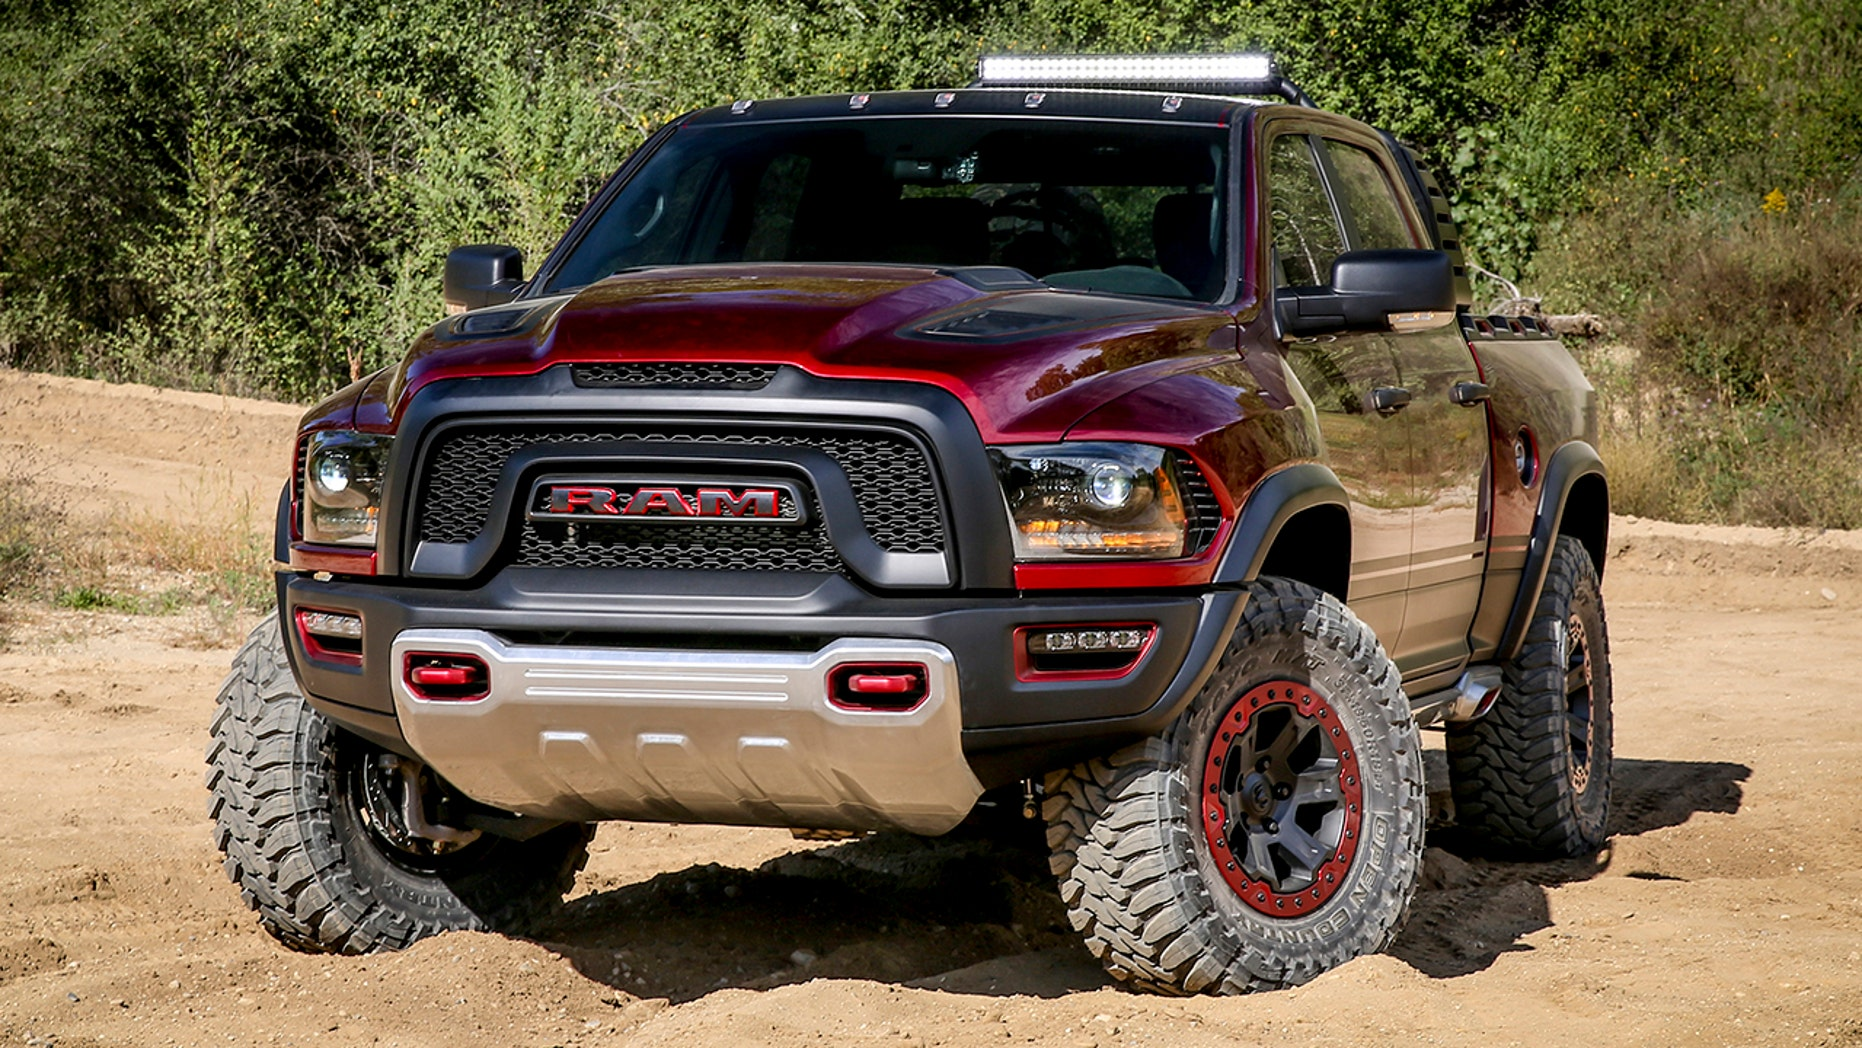 Hellcat Powered Ram Rebel Trx Set To Be The Most Powerful Pickup